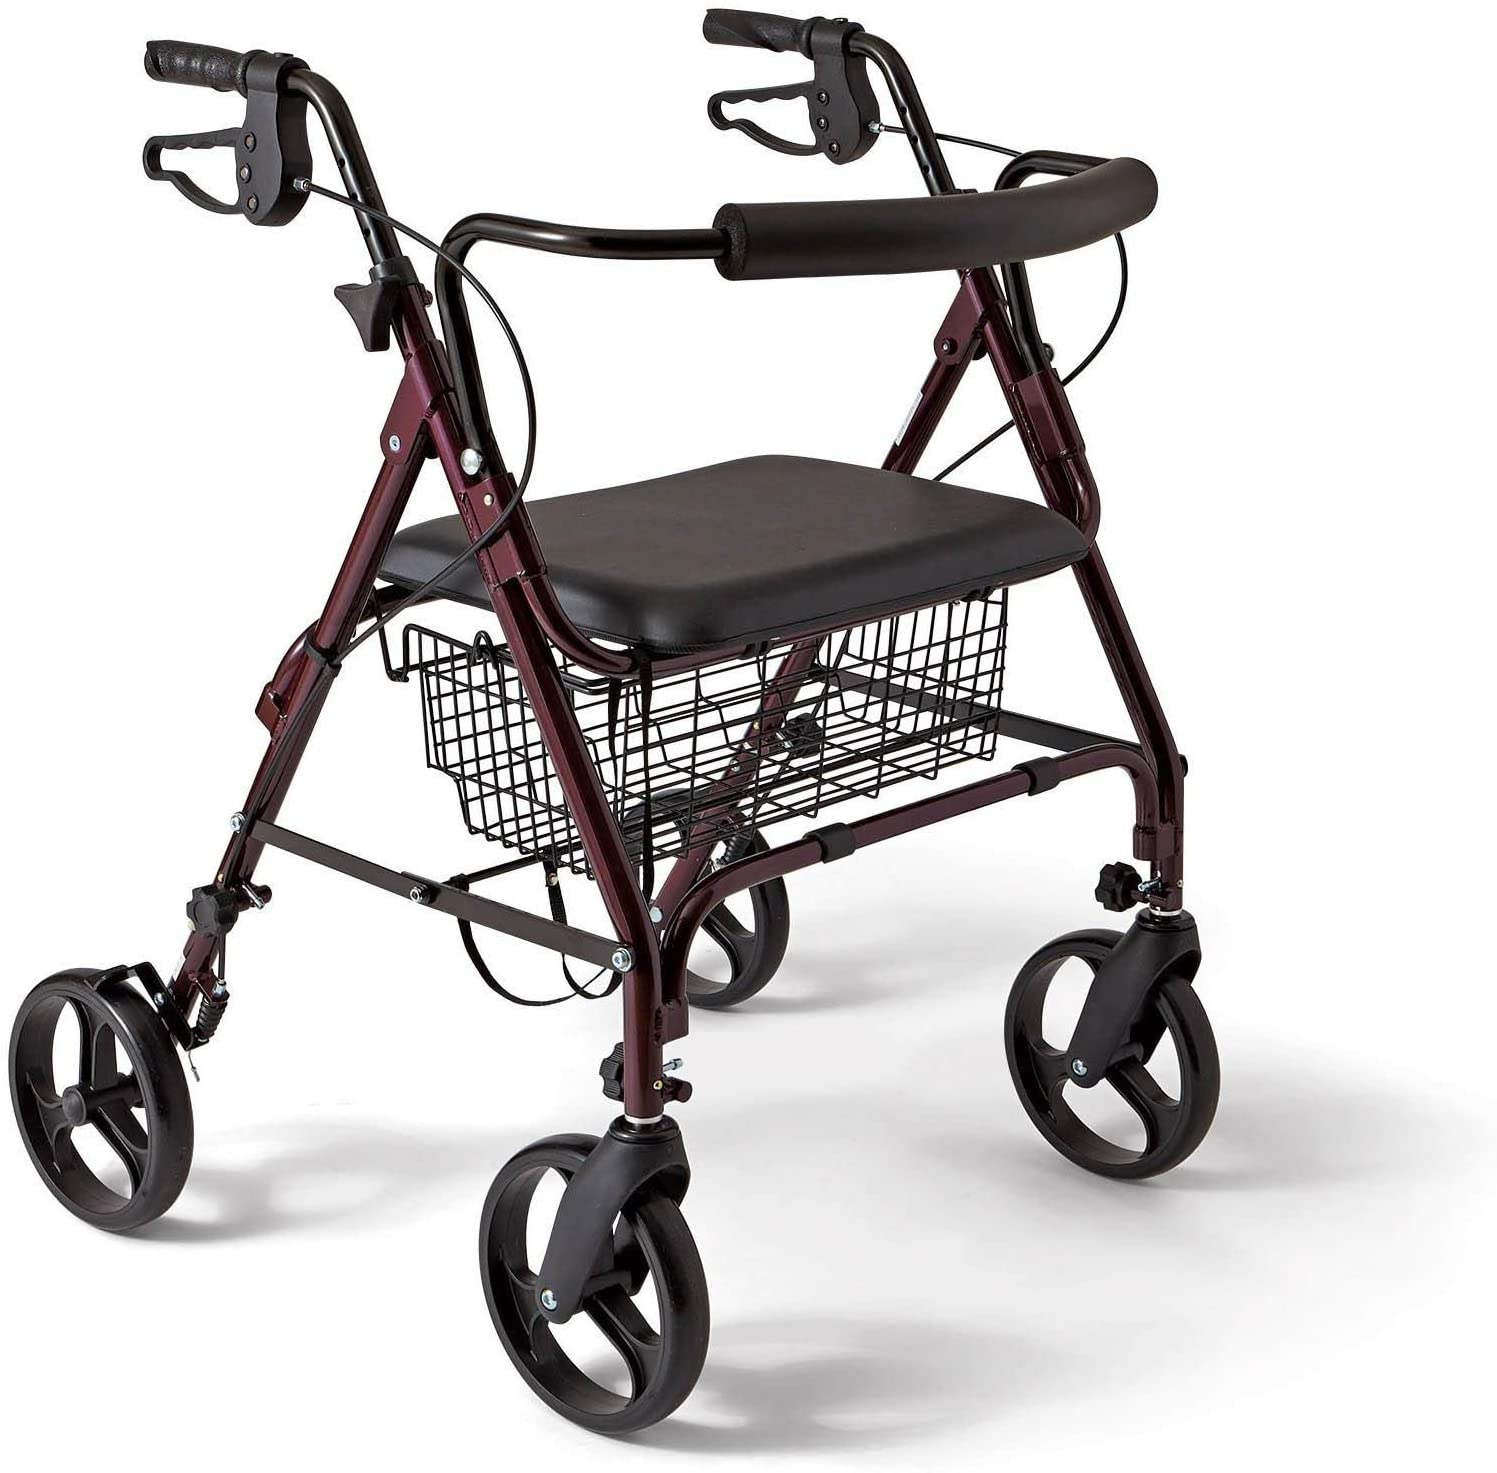 MISC 4-Wheel Rollator Walkers Sitting Standing Rollatator 4-Wheeled Basket Senior Stand Sit Mobility Rollater Walker Folding Small Seniors Rollator-Walker